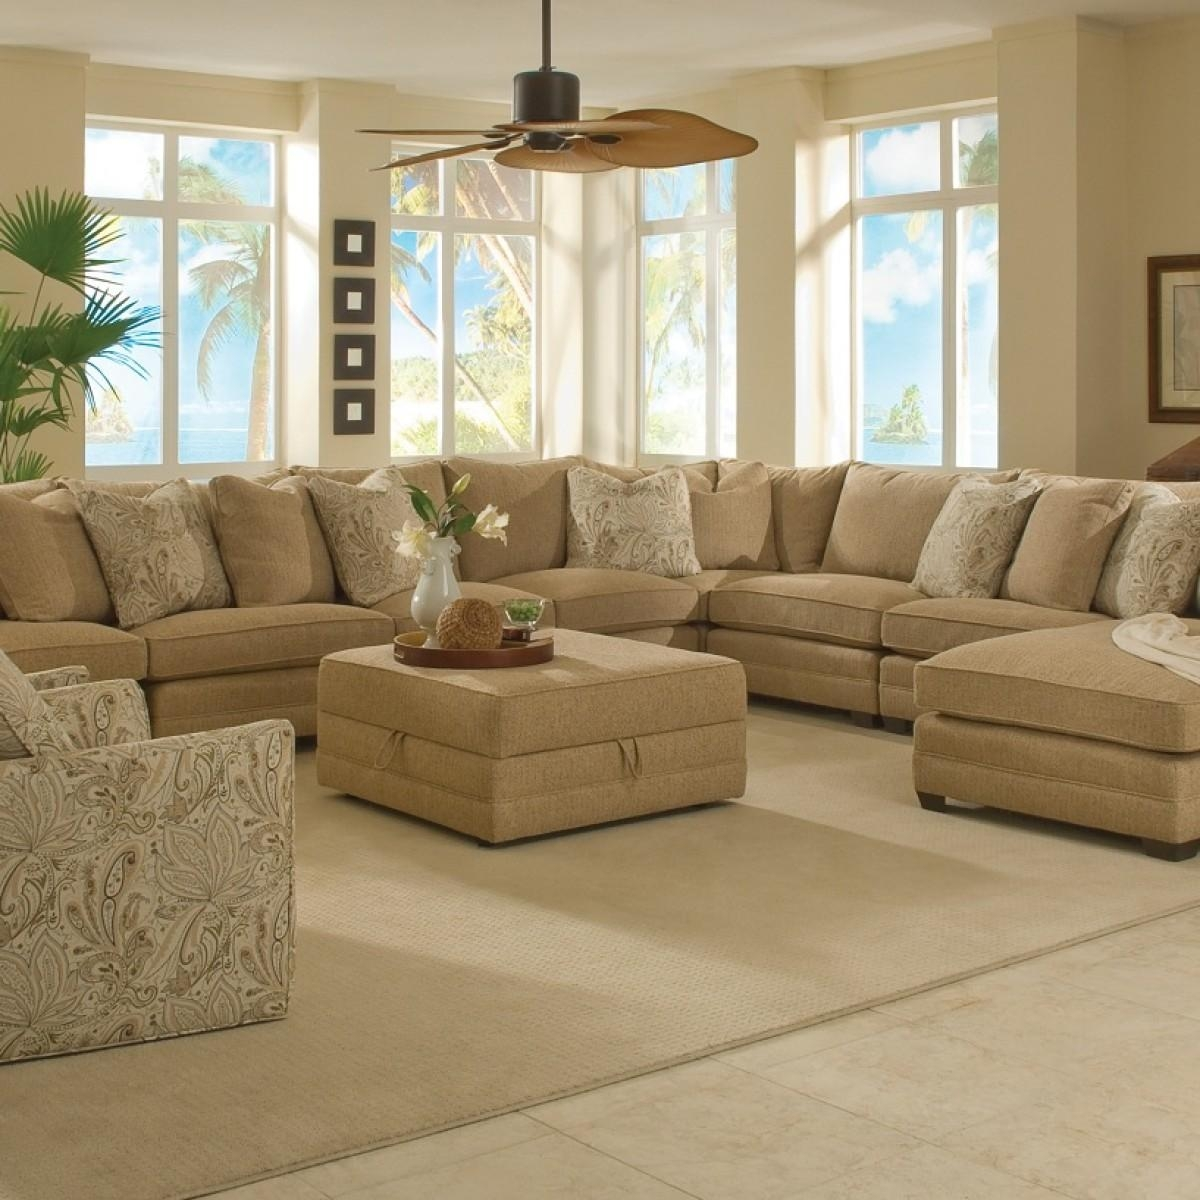 Furniture: Nice Extra Large Sectional Sofa For Large Living Room Inside Oversized Sectional Sofa (Image 8 of 20)